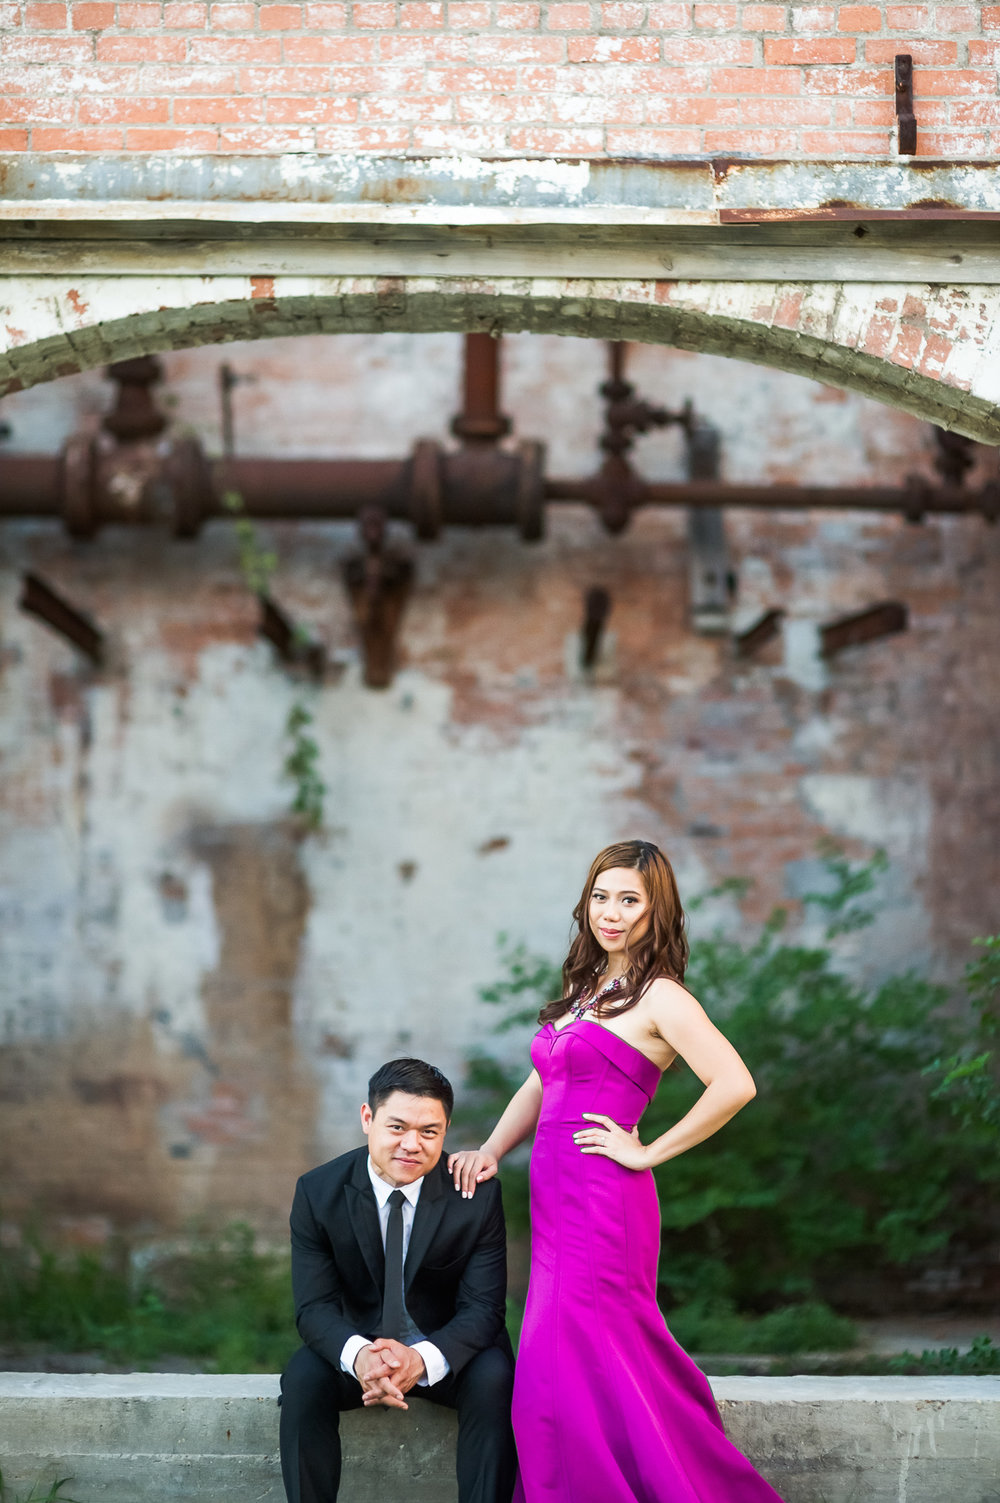 76-David Loi Studios - Cotton Mill - Mckinney Texas - Engagement Session-14319.jpg